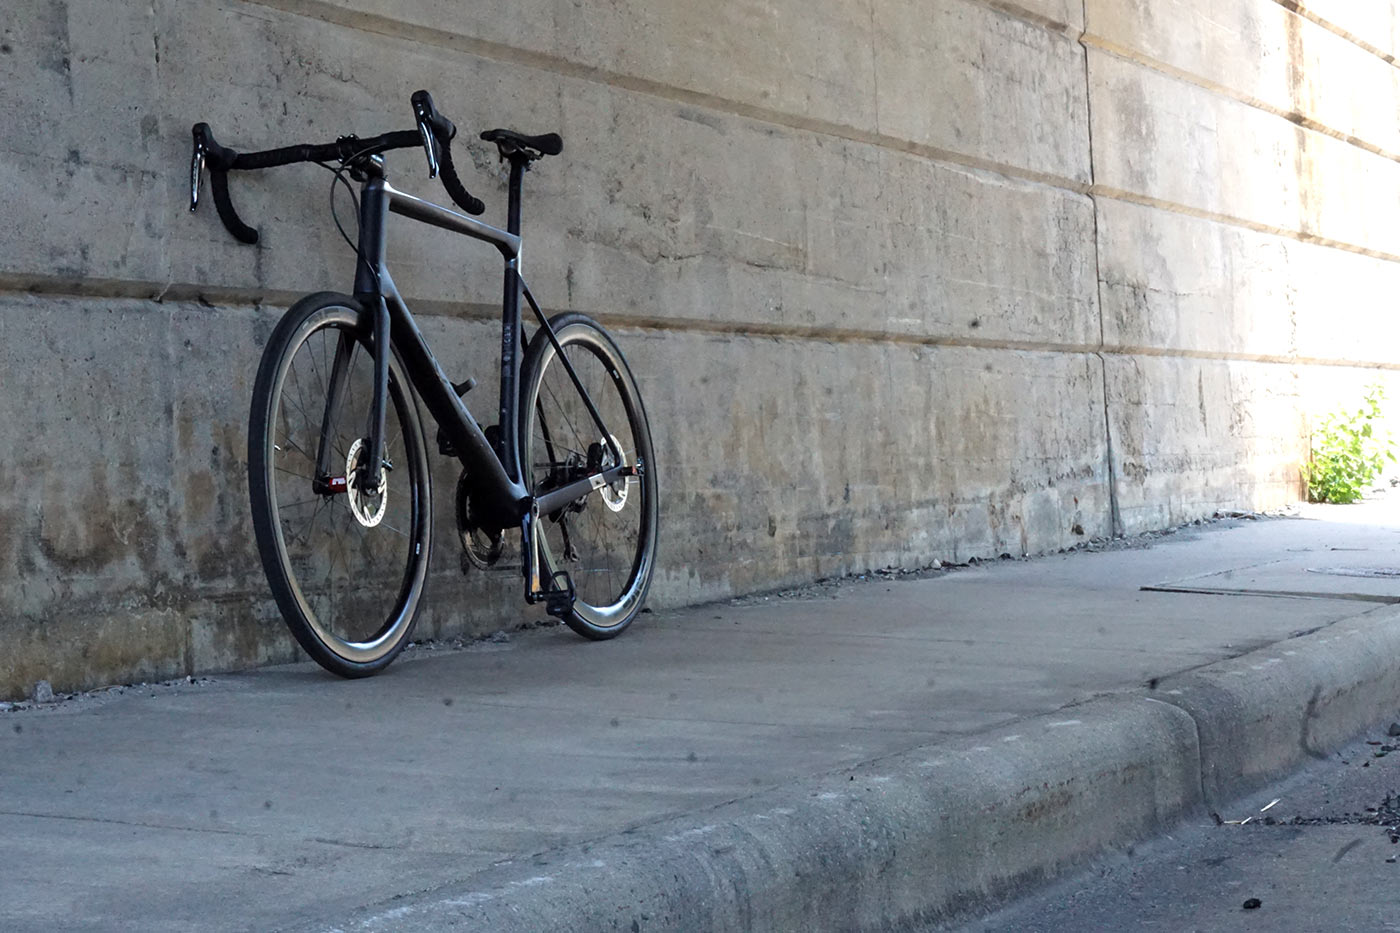 Review: Exept All Road custom carbon fiber road bike delivers a lively ride & perfect fit